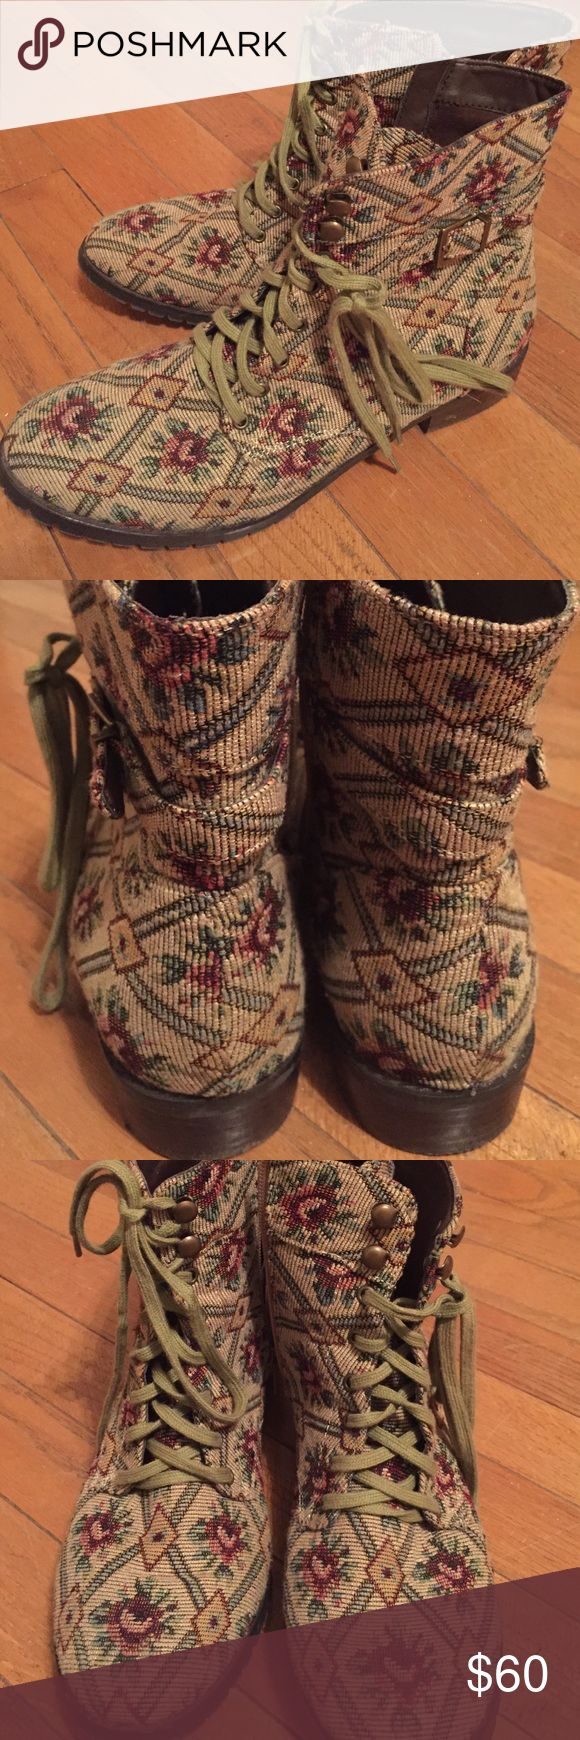 Restricted tapestry combat boots Tapestry boots by Restricted, bought from Modcloth. Beige with green and red floral print. Worn only a few times, only visible wear is on the soles (I will clean them before shipping). Restricted Shoes